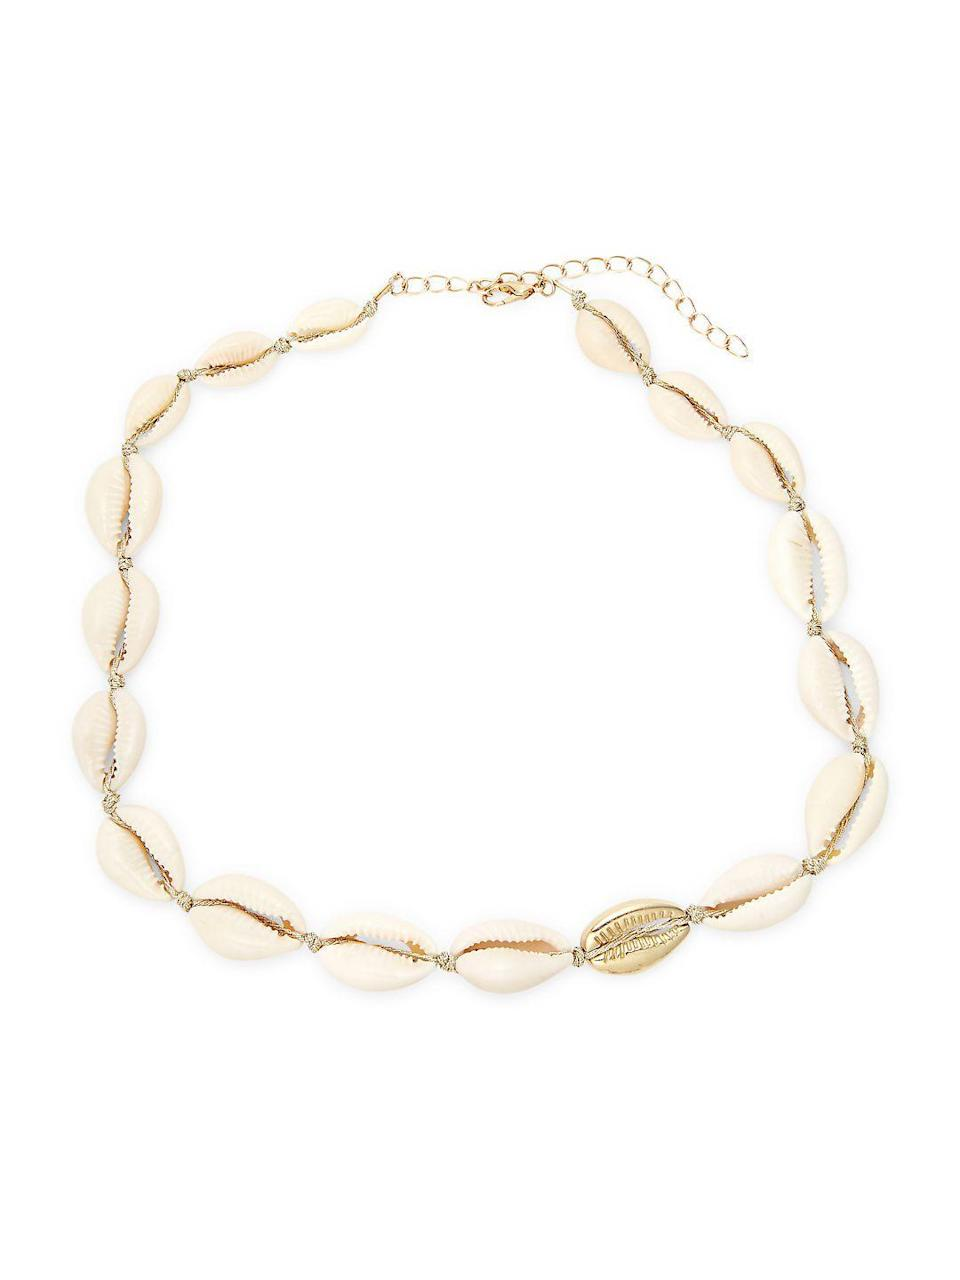 "<h3>Shell-Adorned Choker</h3><p>Add a surfer-chic accent to your summer look with this choker adorned with shells and a goldtone lobster clasp.</p><br><br><strong>Design Lab</strong> Goldtone Choker Necklace, $15.4, available at <a href=""https://www.walmart.com/ip/Goldtone-Choker-Necklace/694334490"" rel=""nofollow noopener"" target=""_blank"" data-ylk=""slk:Walmart"" class=""link rapid-noclick-resp"">Walmart</a>"